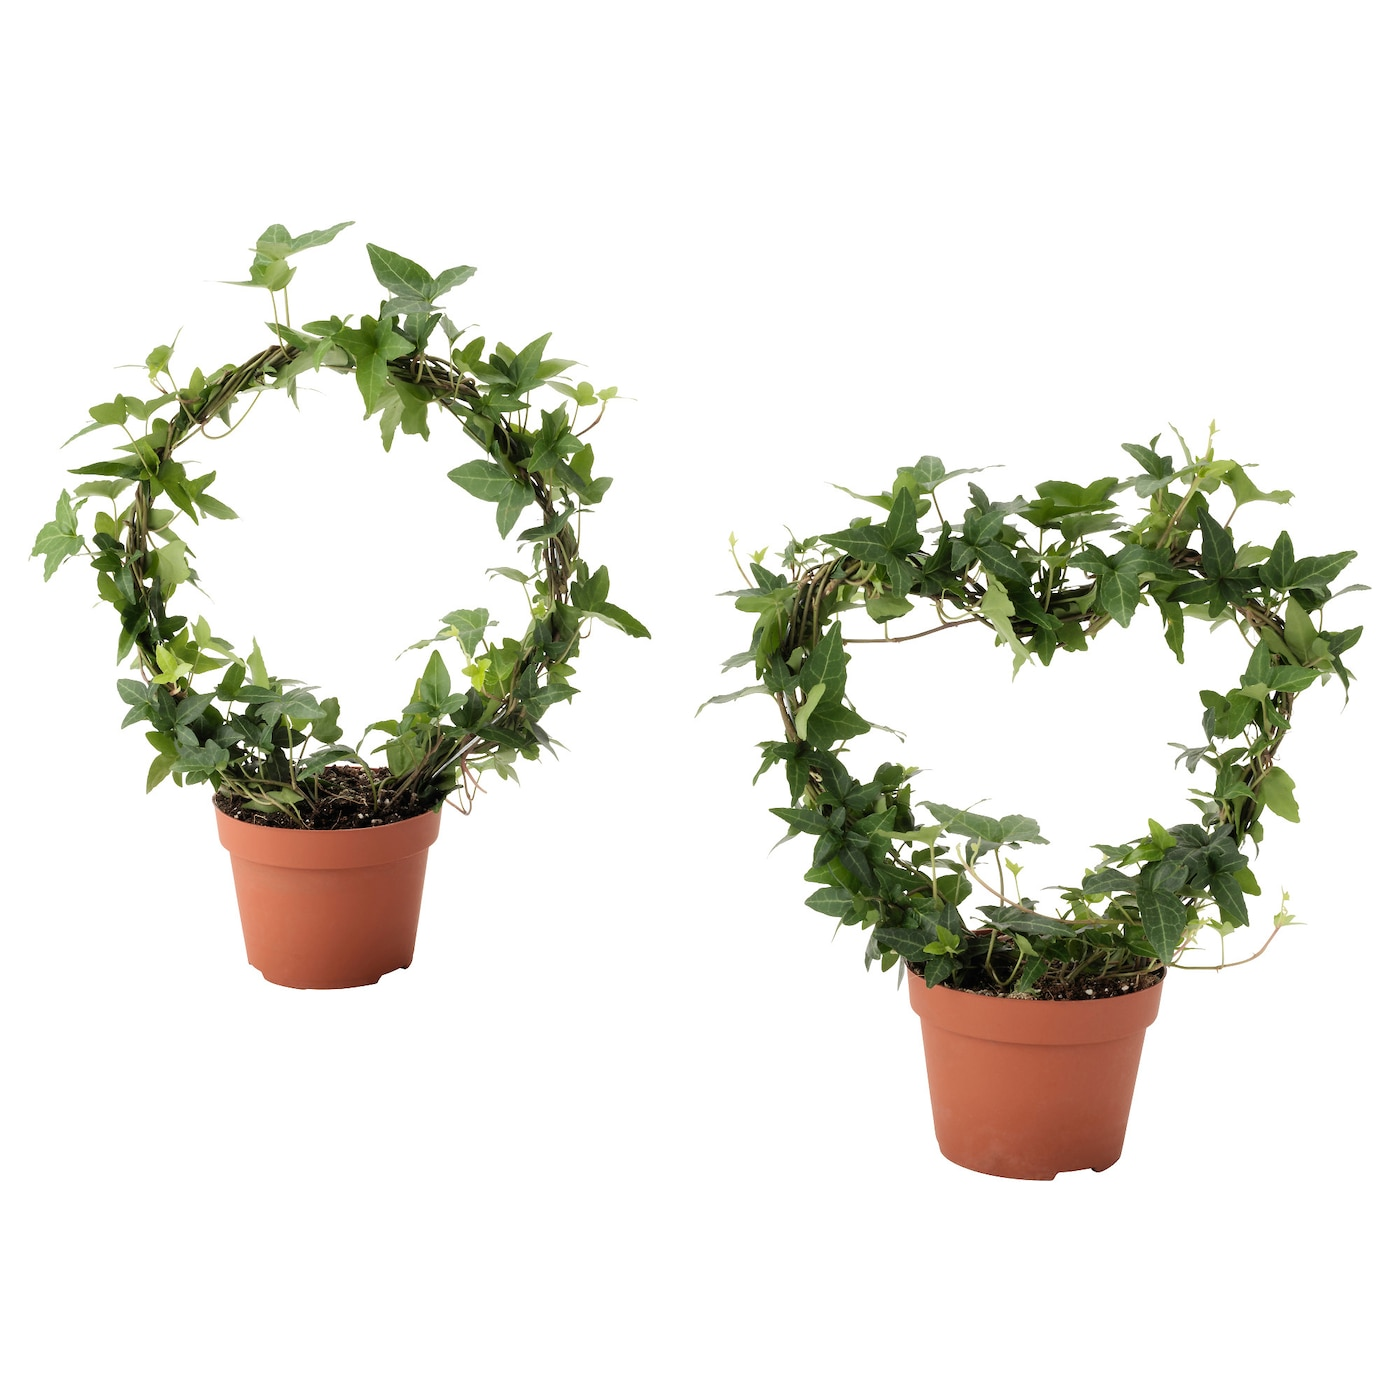 hedera helix plante en pot lierre diverses esp ces 13 cm ikea. Black Bedroom Furniture Sets. Home Design Ideas